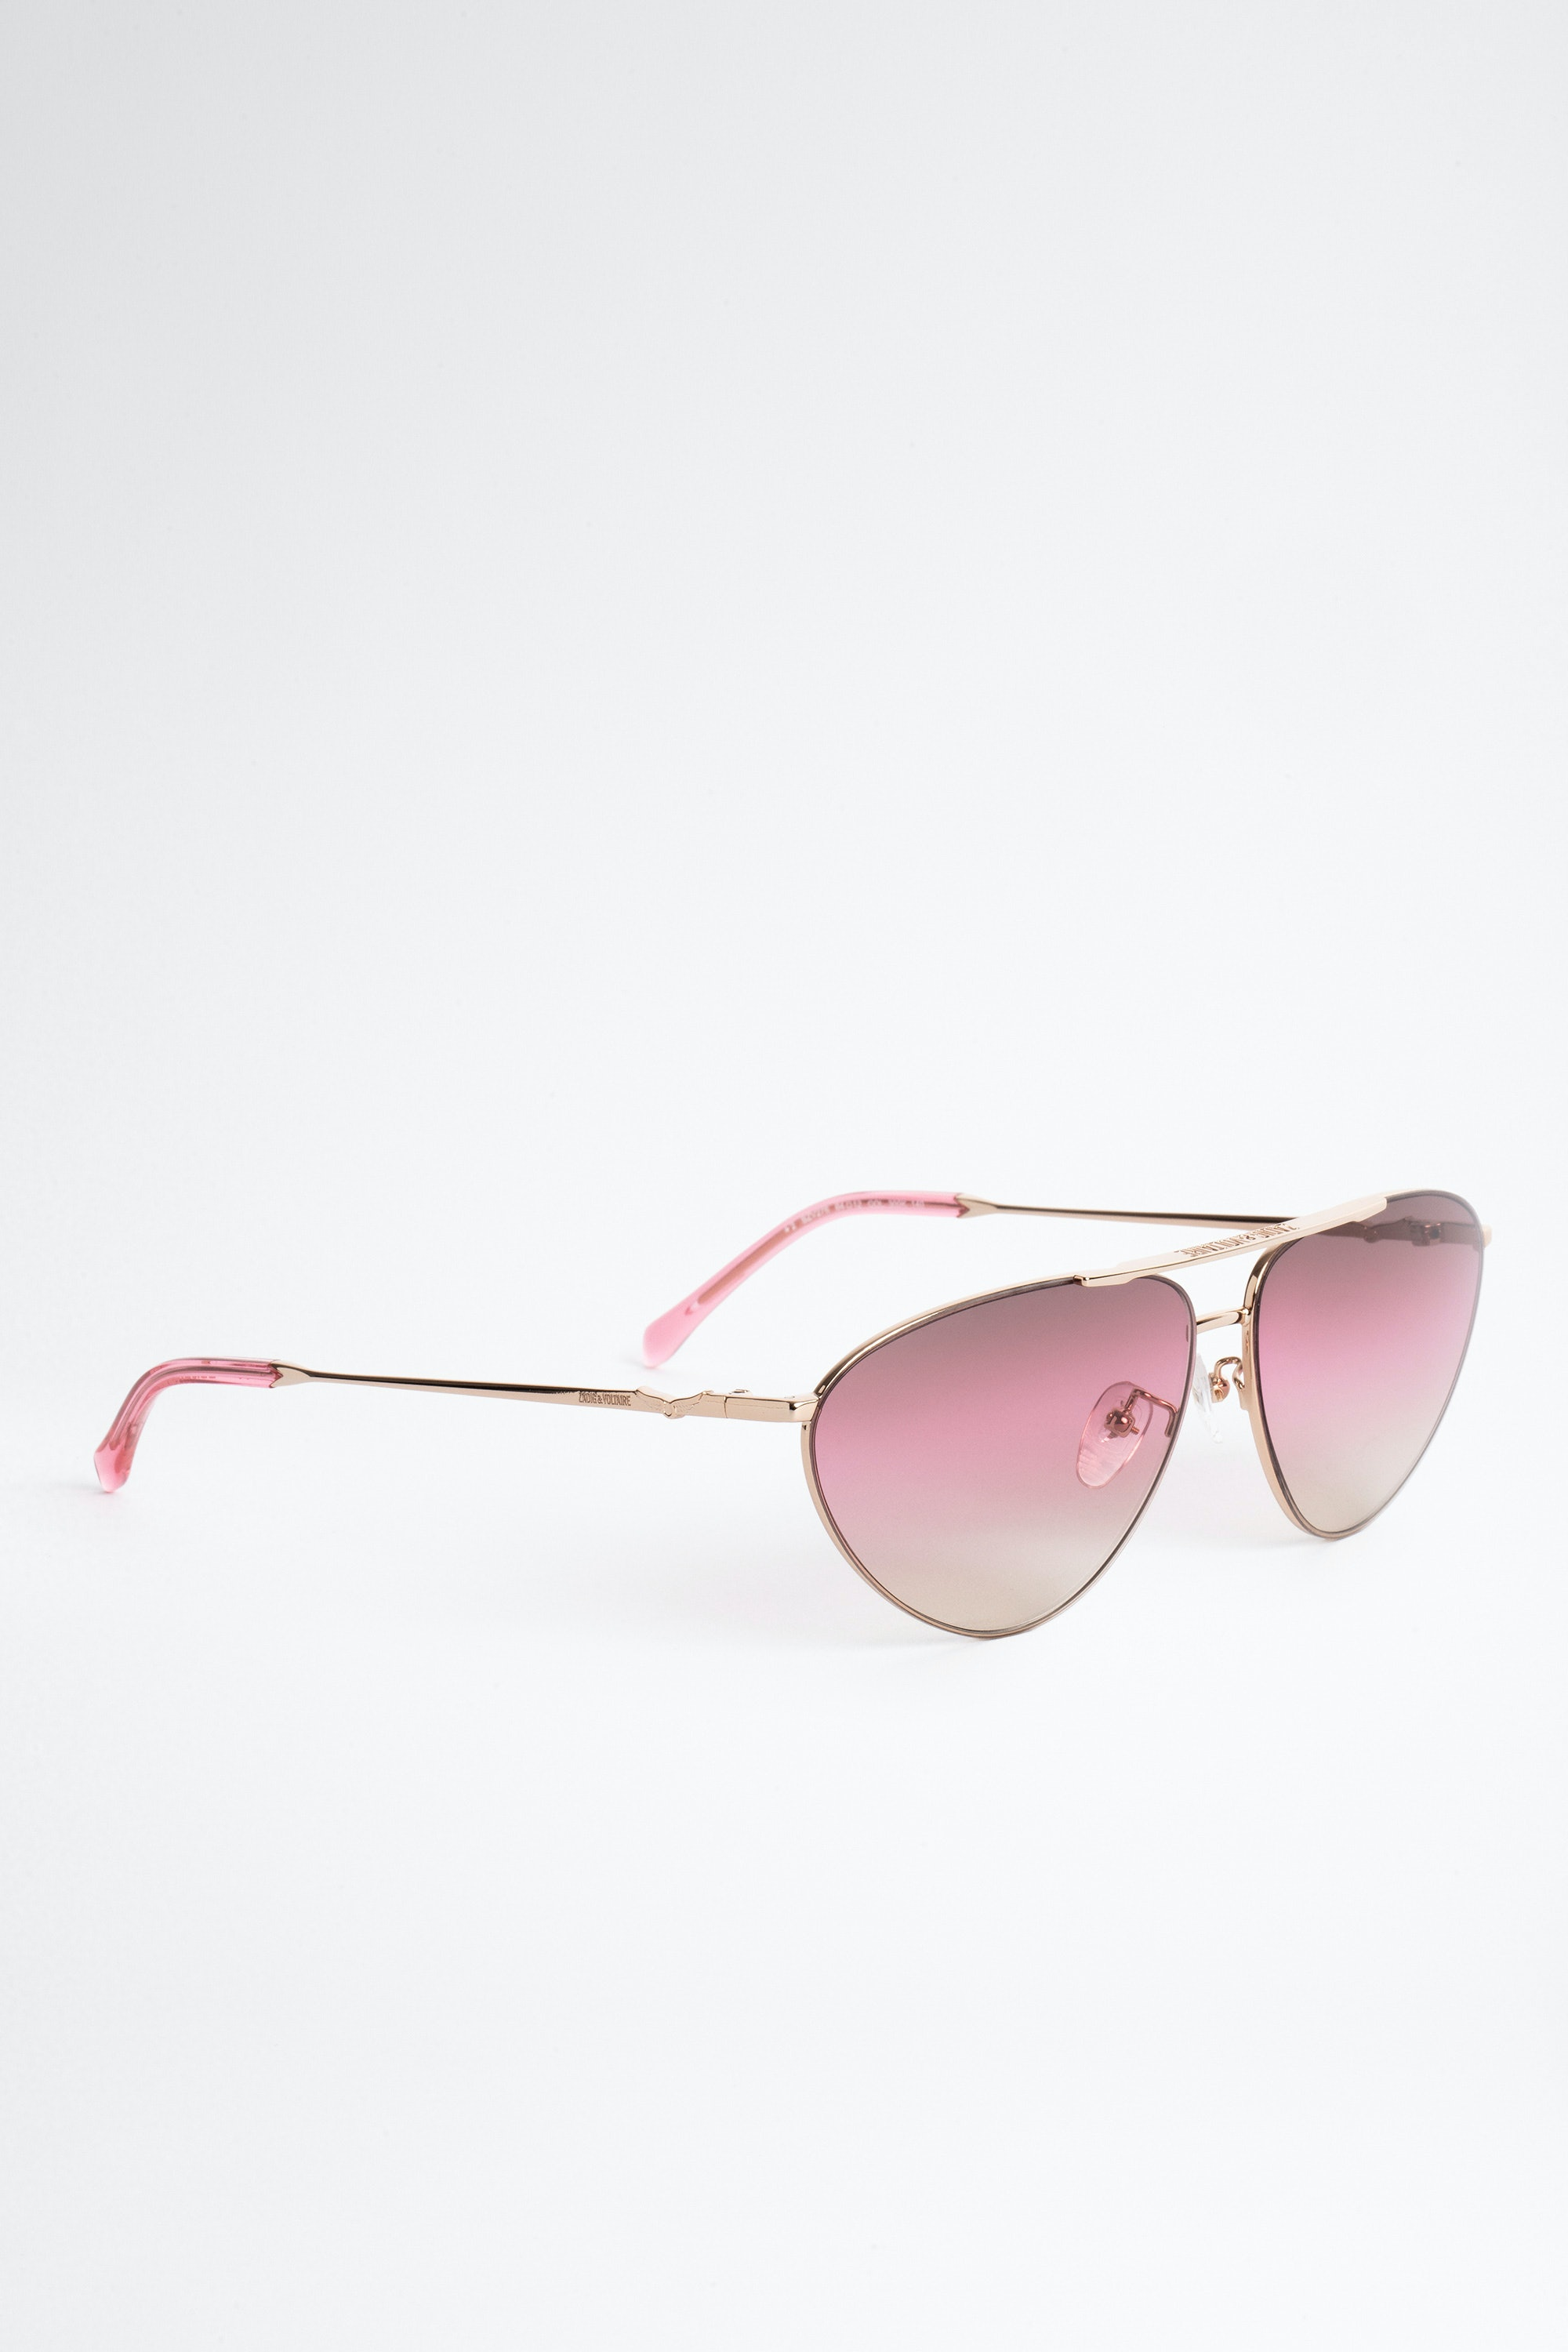 Sunglasses SZV276